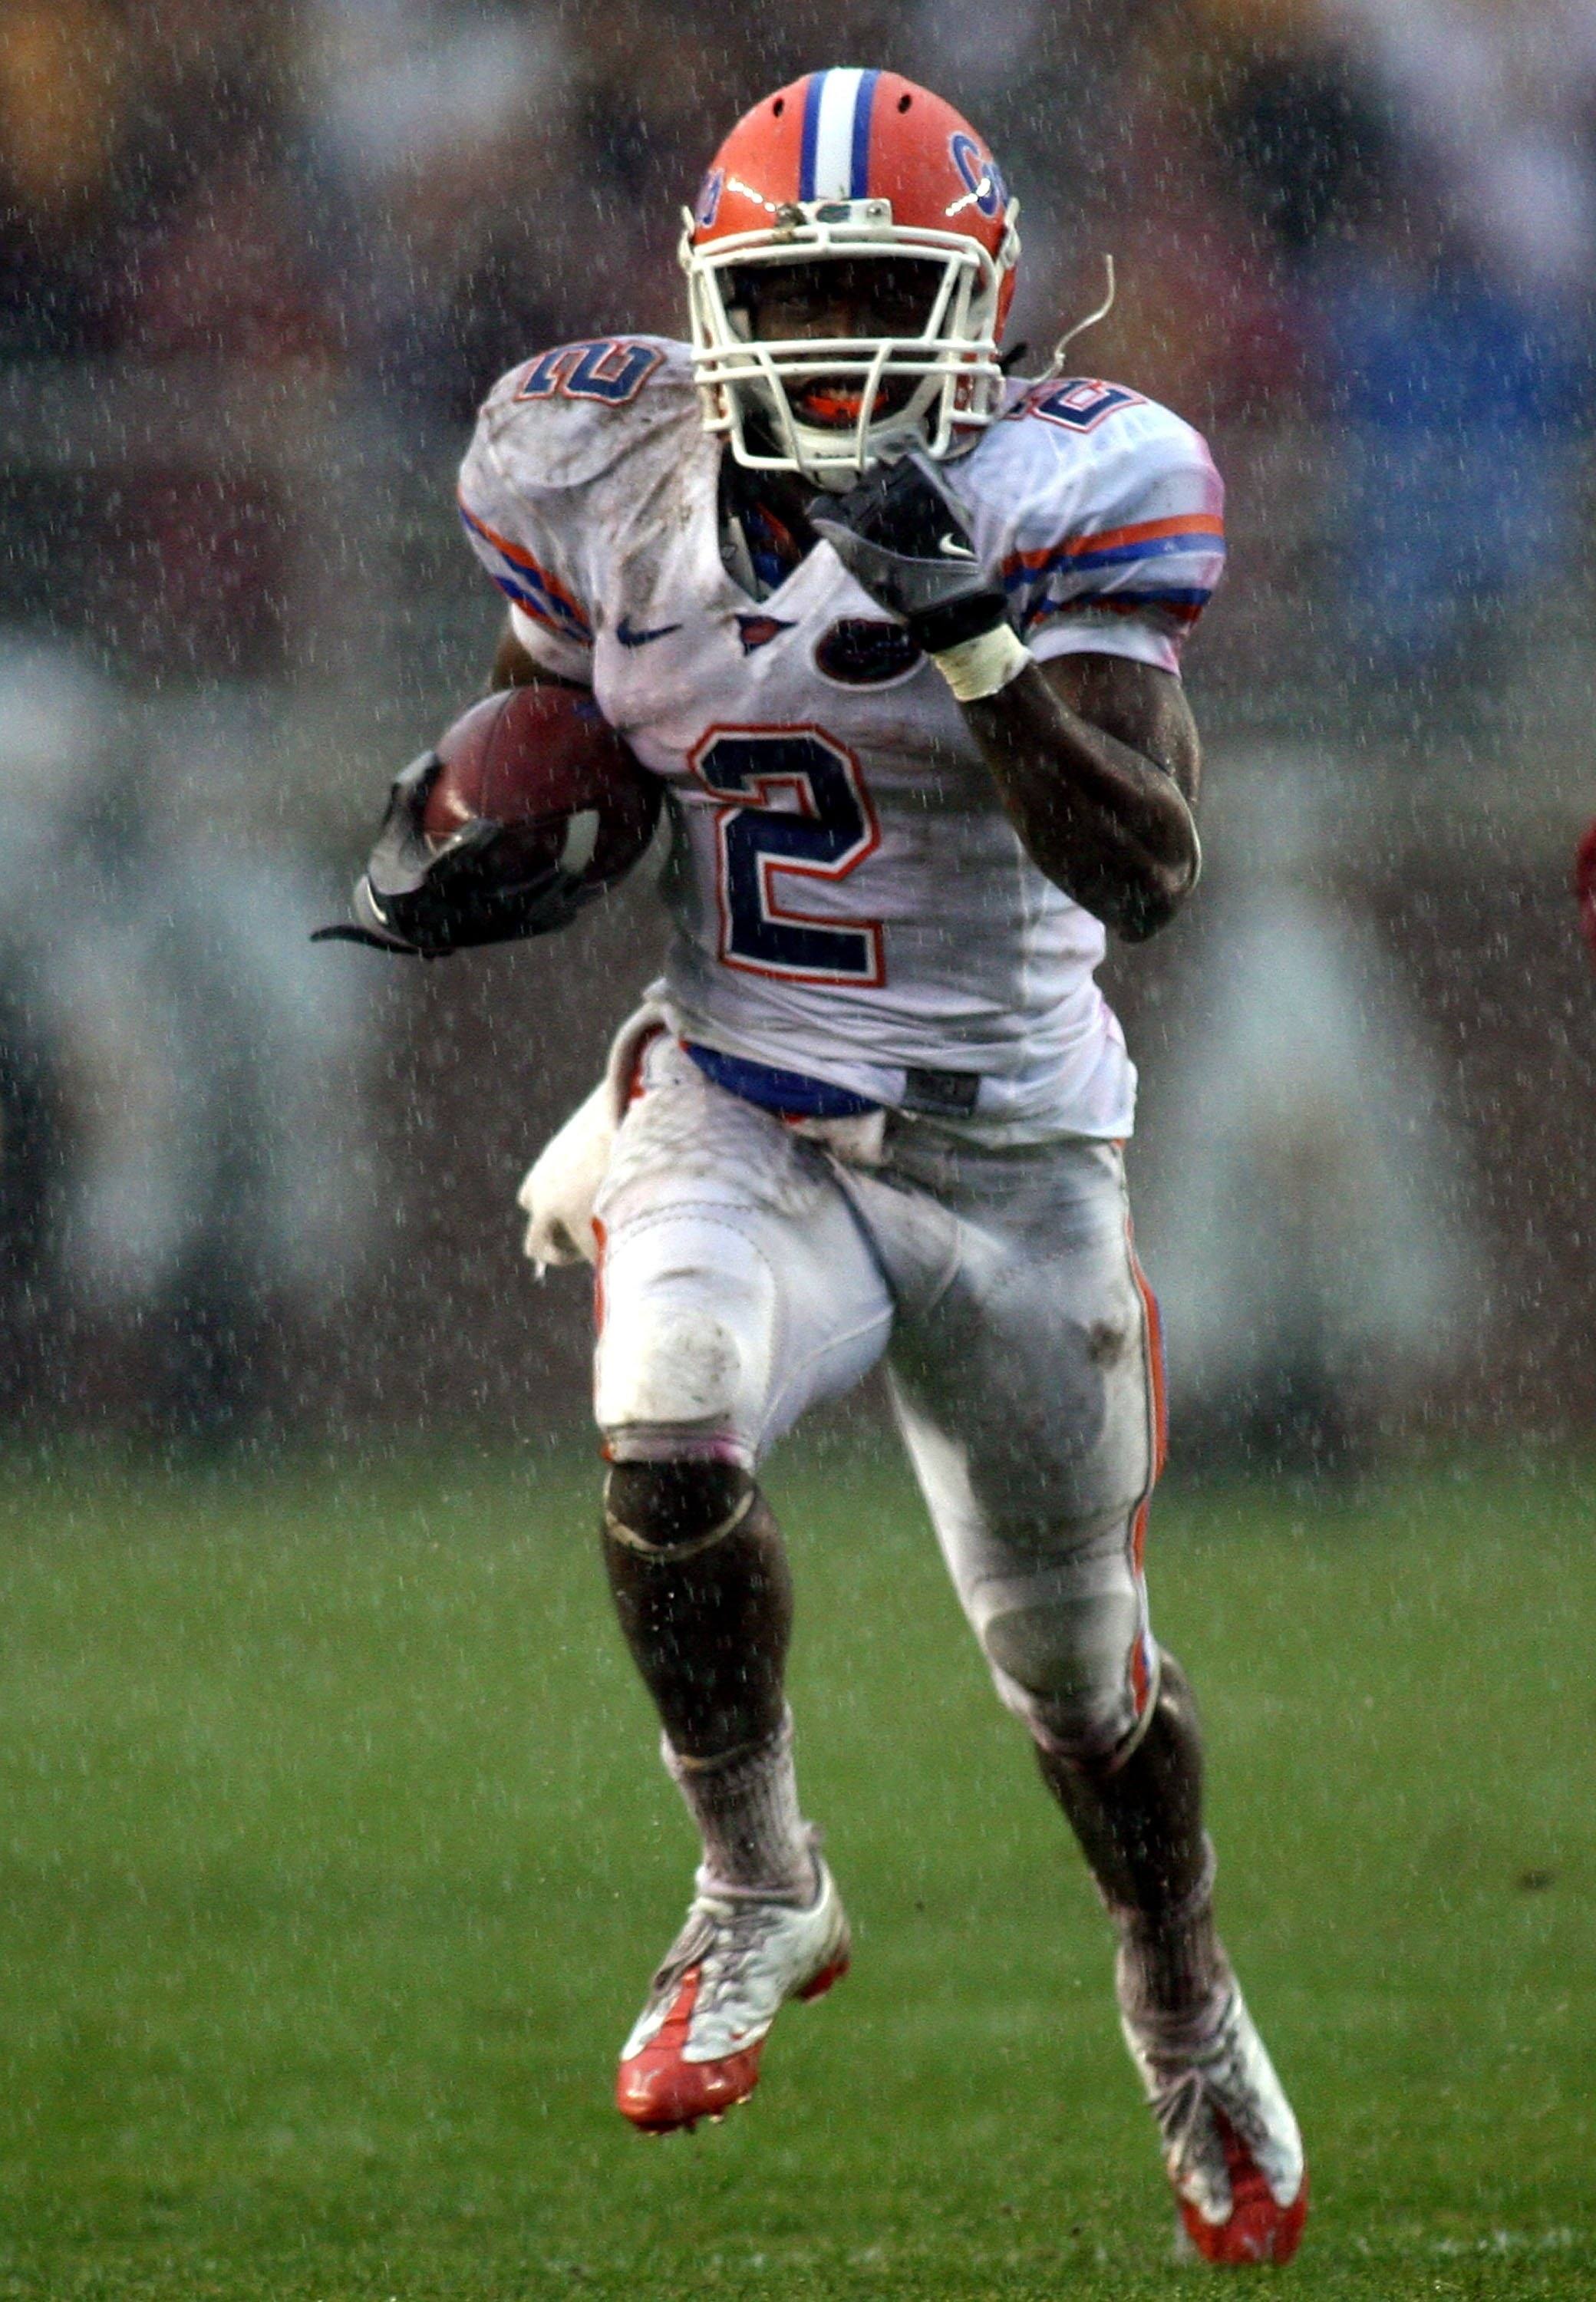 TALLAHASSEE, FL - NOVEMBER 29: Receiver Jeffrey Demps #2 of the Florida Gators runs against the Florida State Seminoles during the first half at Bobby Bowden Field at Doak Campbell Stadium on November 29, 2008 in Tallahassee, Florida.  Florida defeated Fl